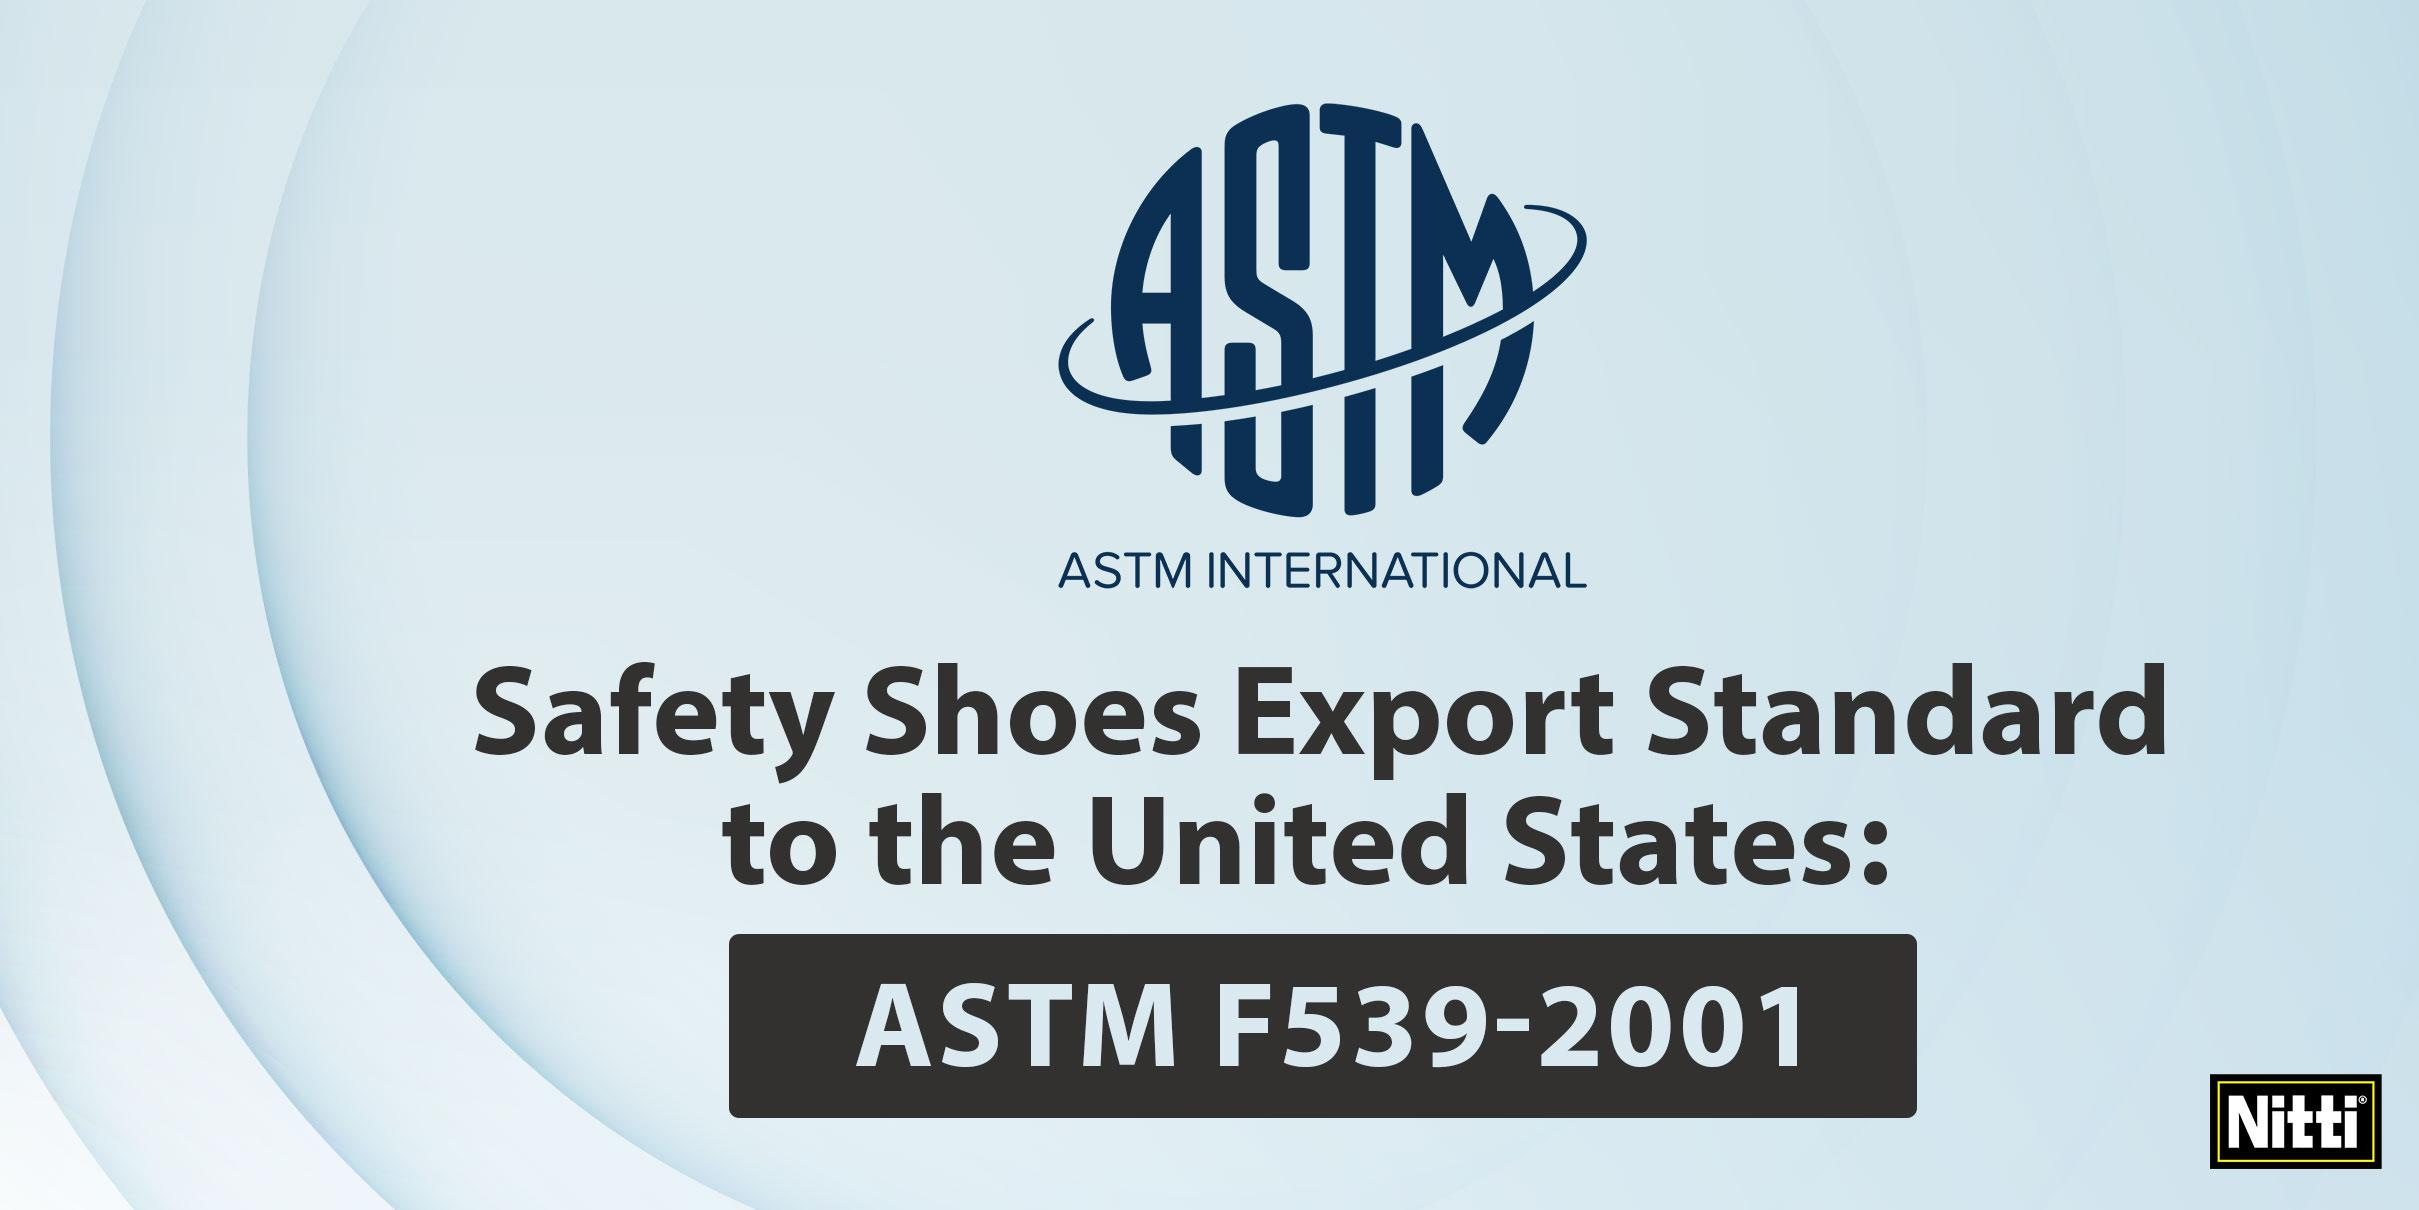 Safety shoes export standard to the United States: ASTM F539-2001